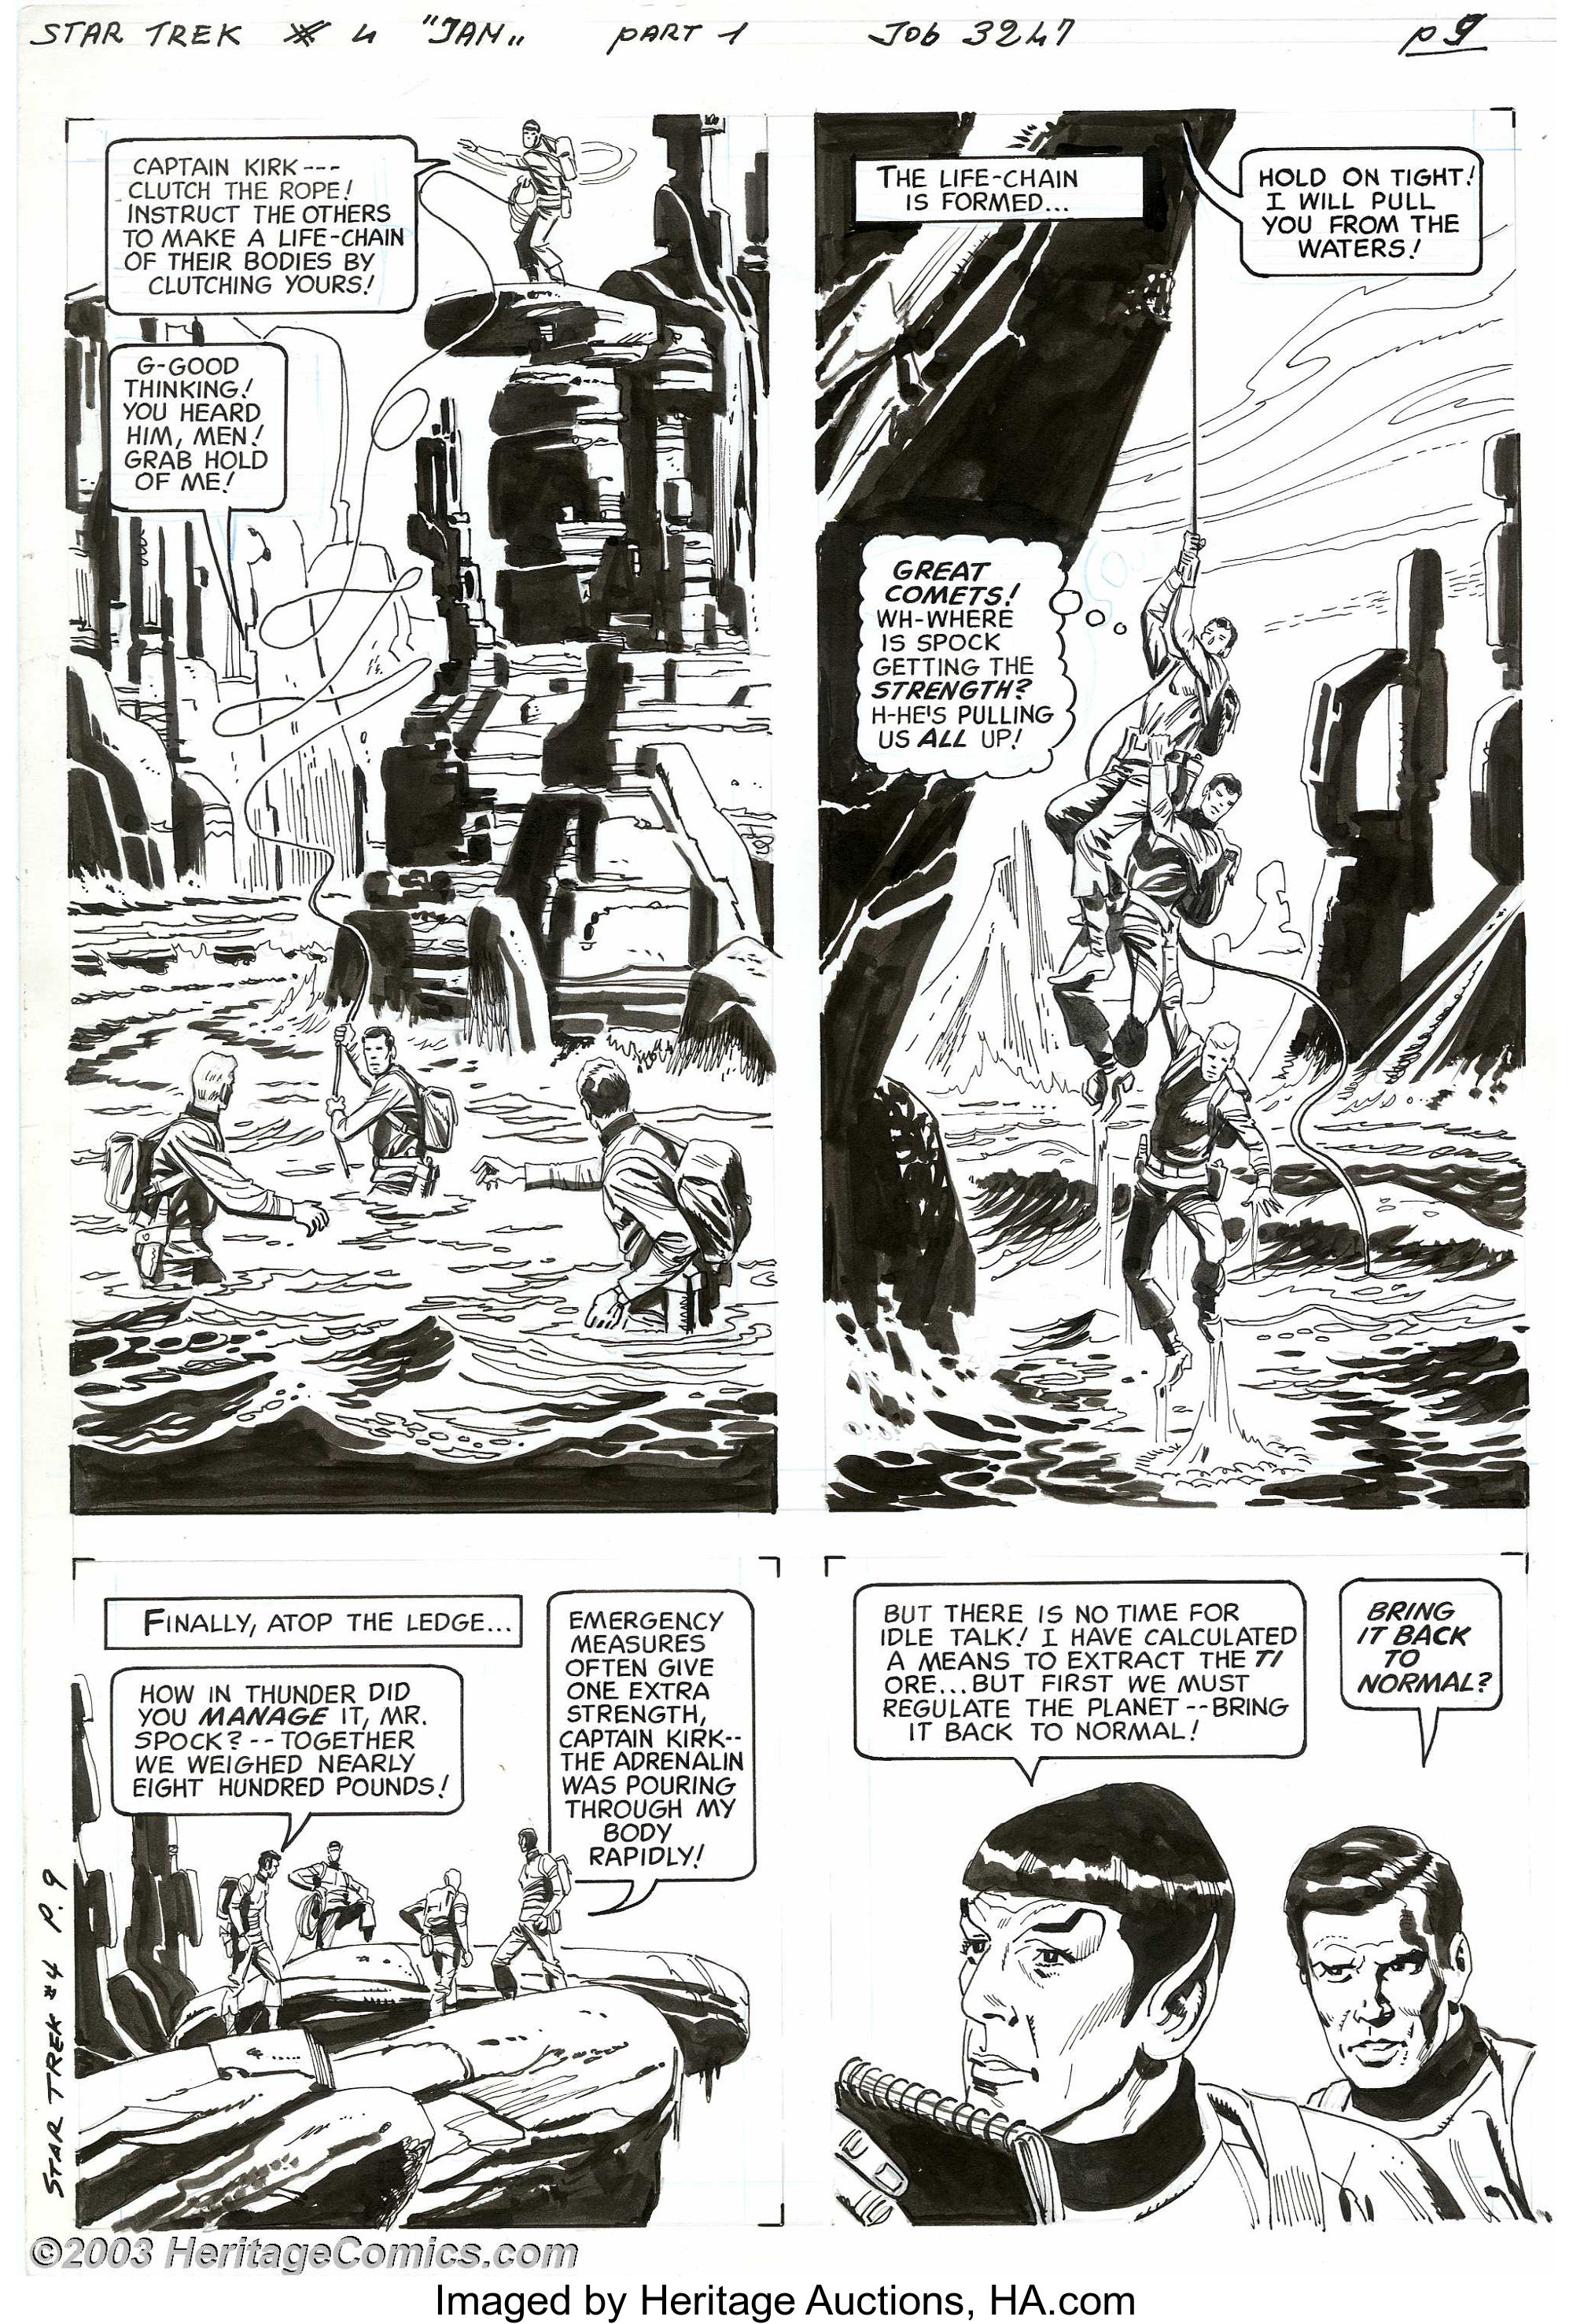 Alberto Giolitti And Giovanni Ticci Original Art For Star Trek 4 Lot 5235 Heritage Auctions